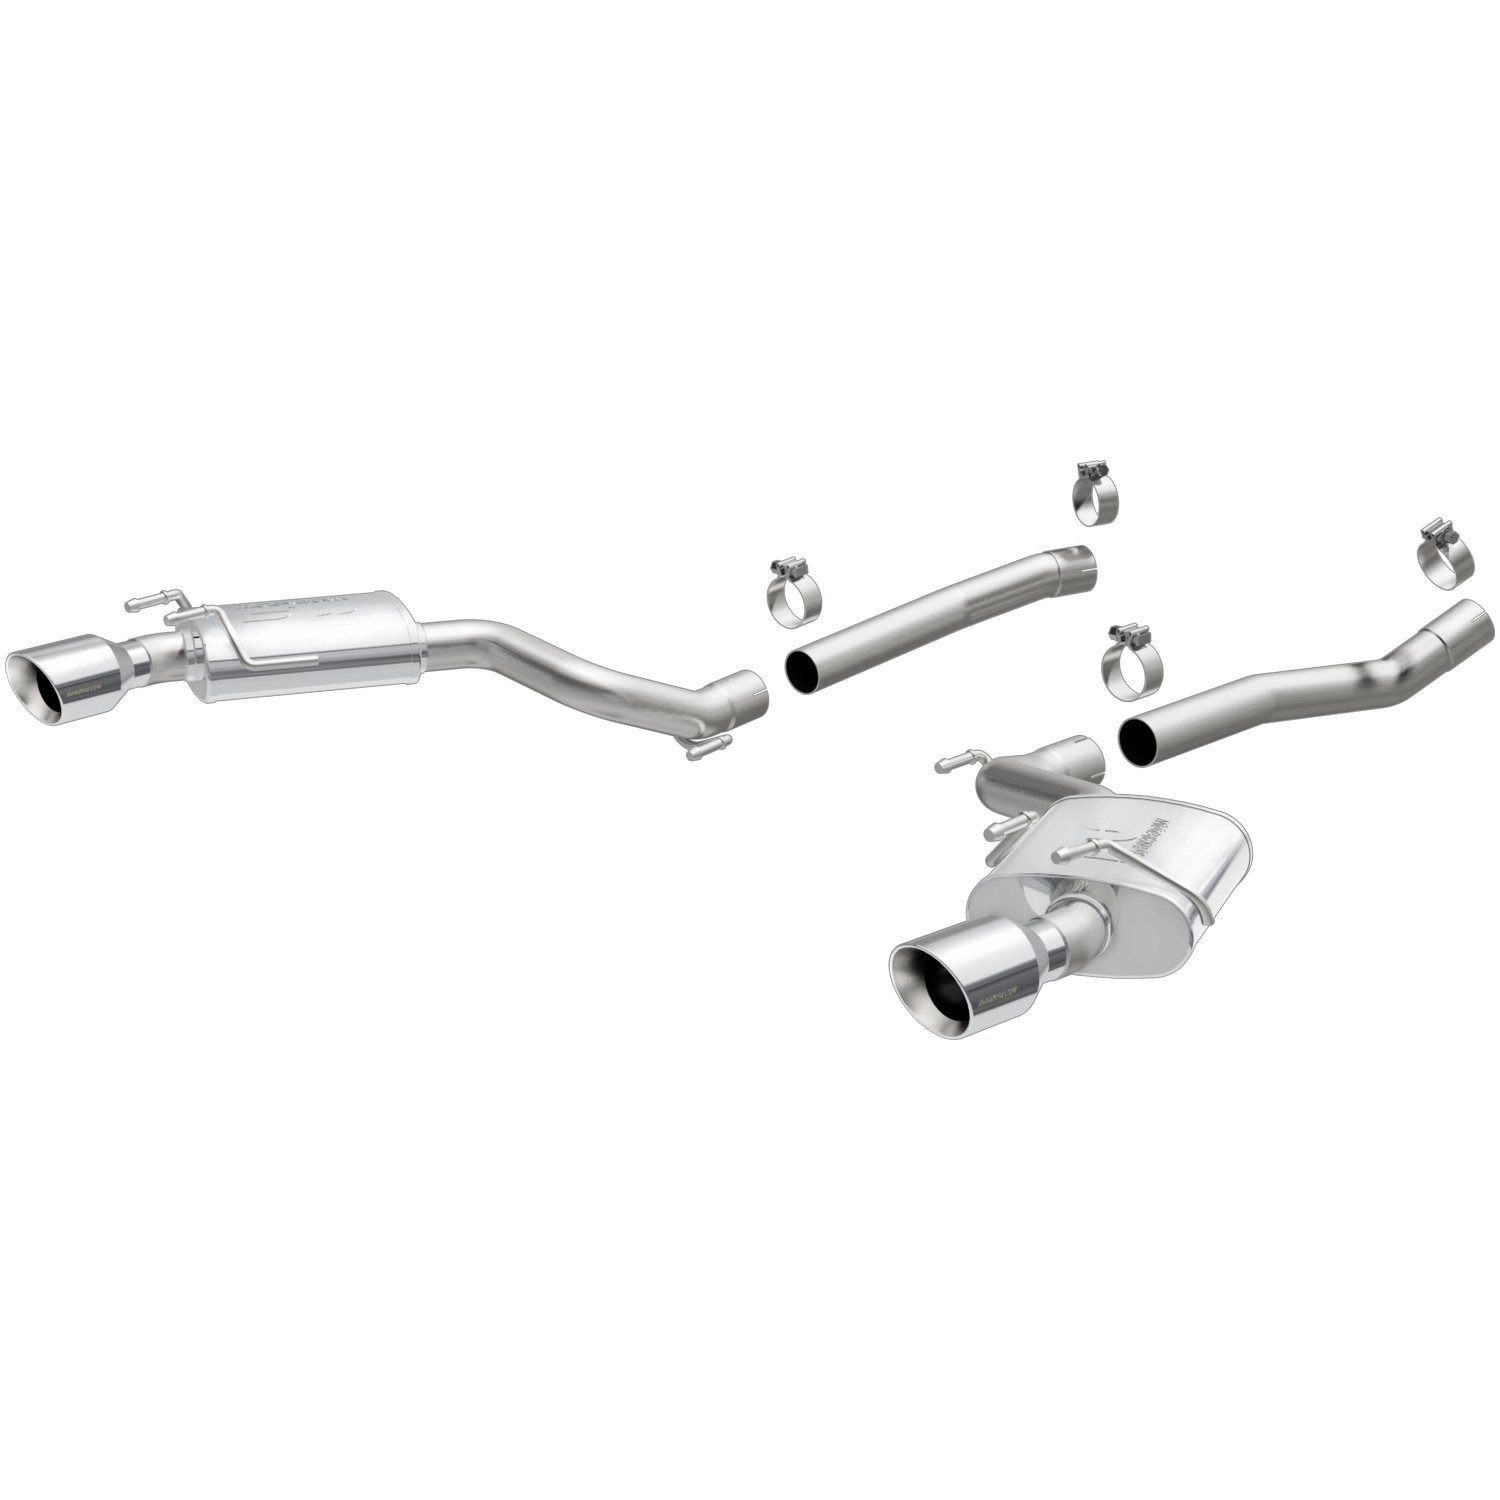 Magnaflow 15092 - Magnaflow GM Car Exhaust Systems